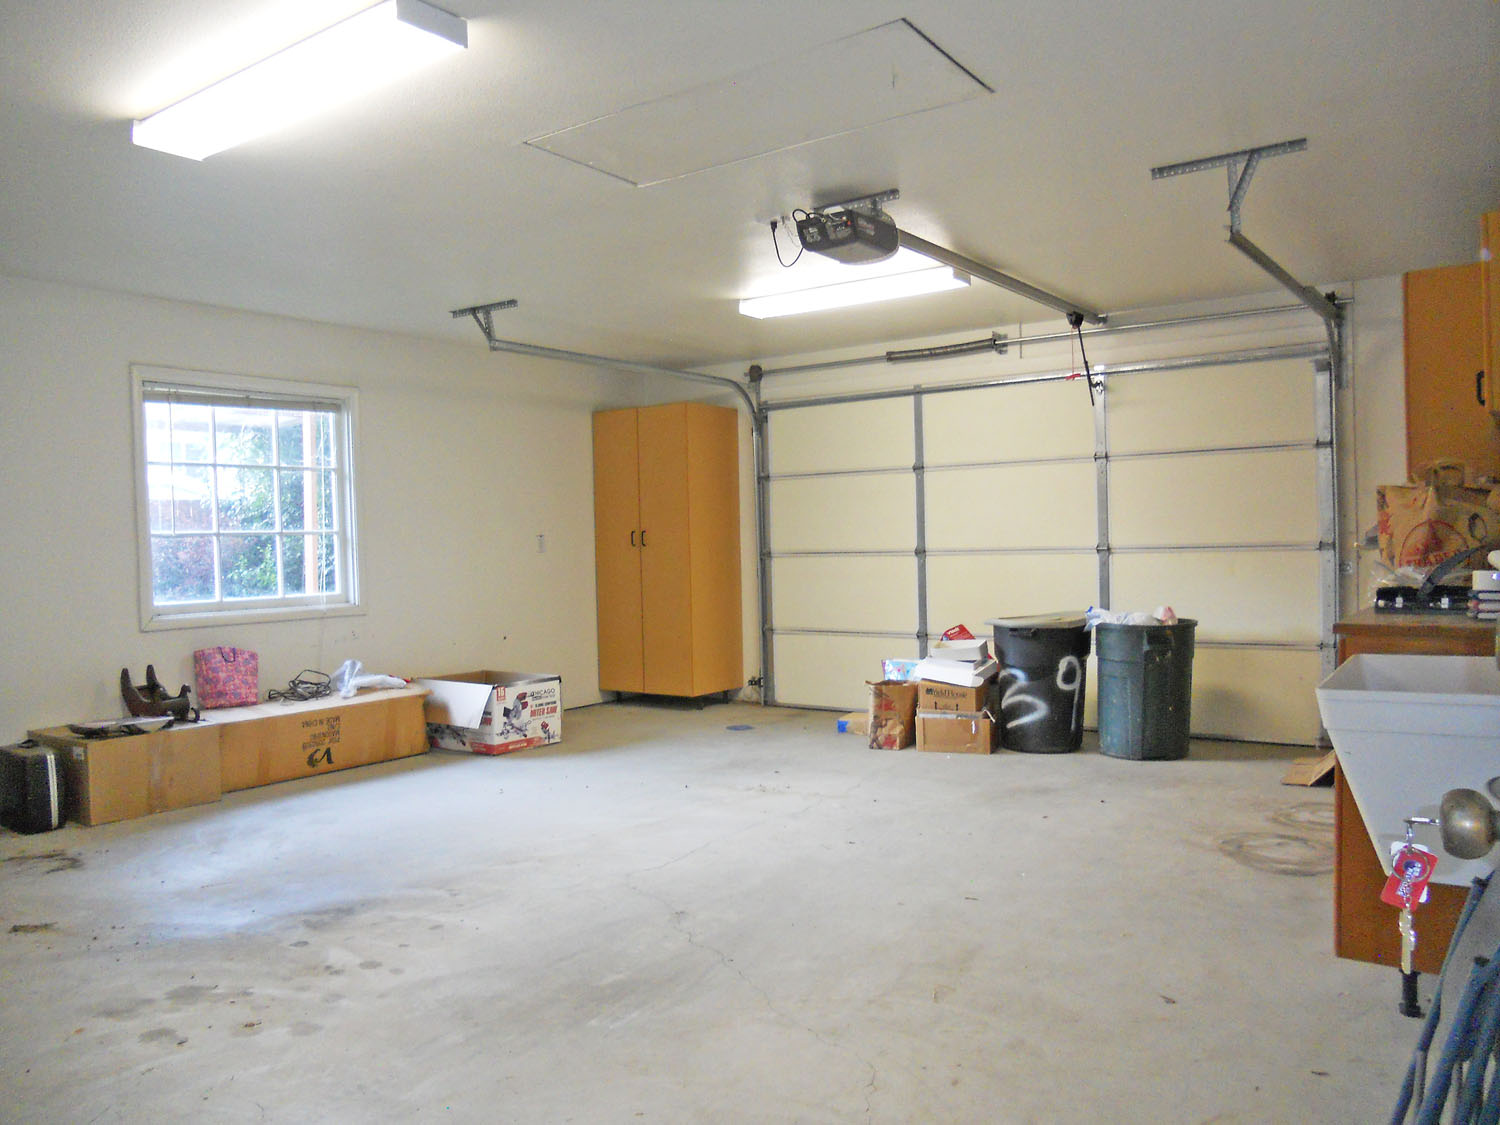 Finished garage with pull-down ladder to attic storage. There is also a convenient utility sink and cabinetry.